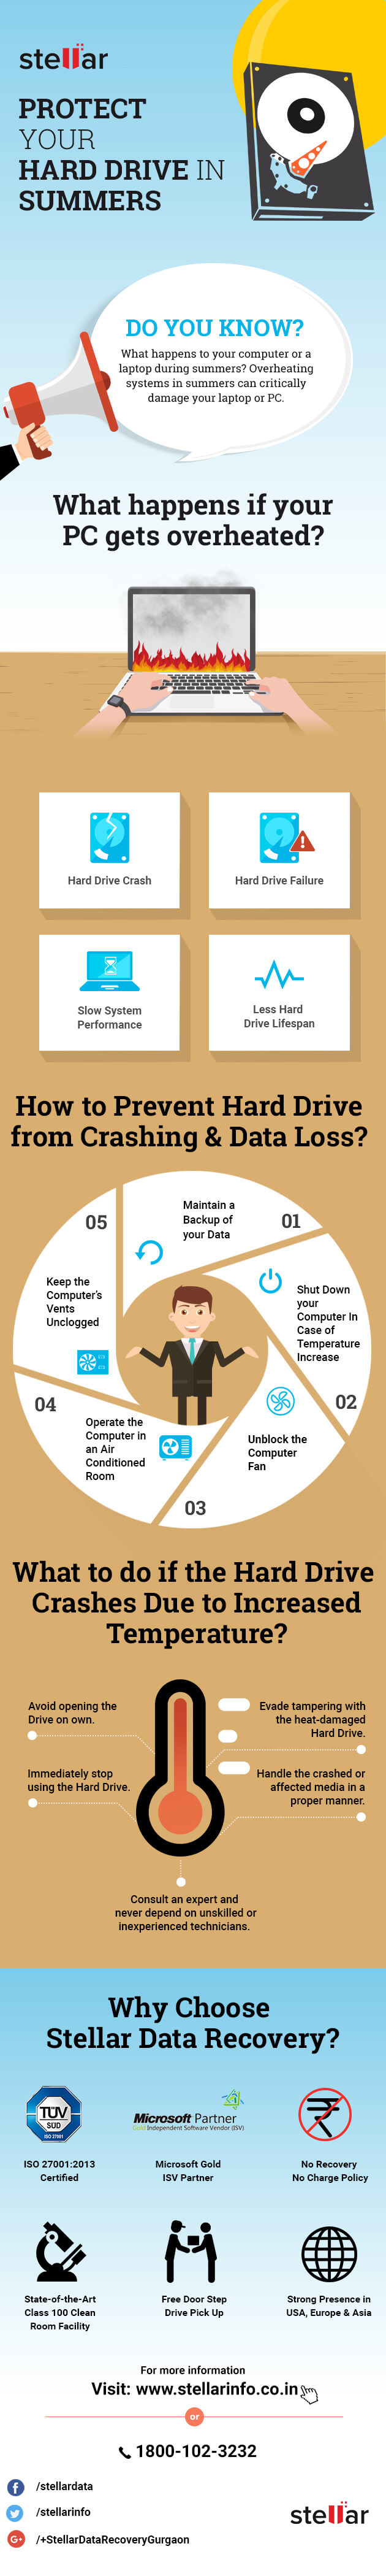 Protect Your Hard Drive During Summers  infographic